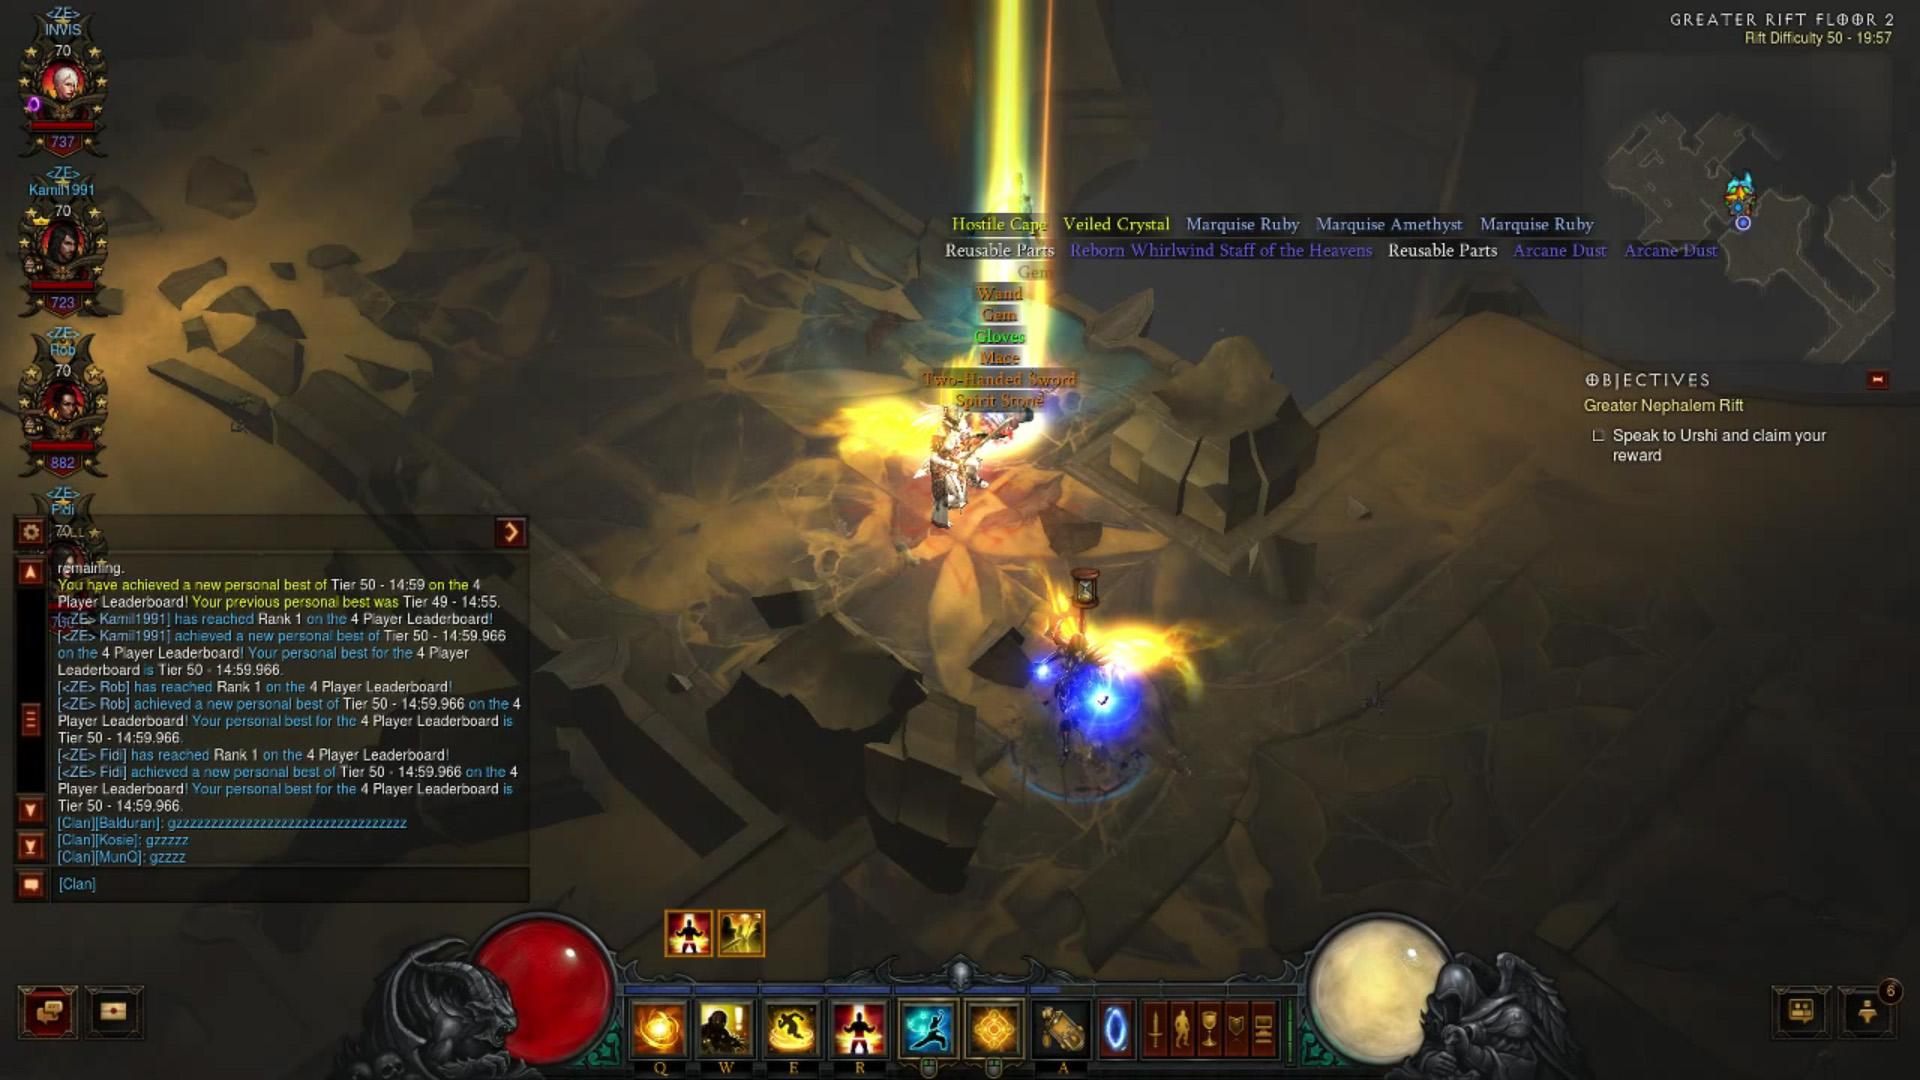 diablo3-invis-greater-rift-stufe-50-clear-loot_news